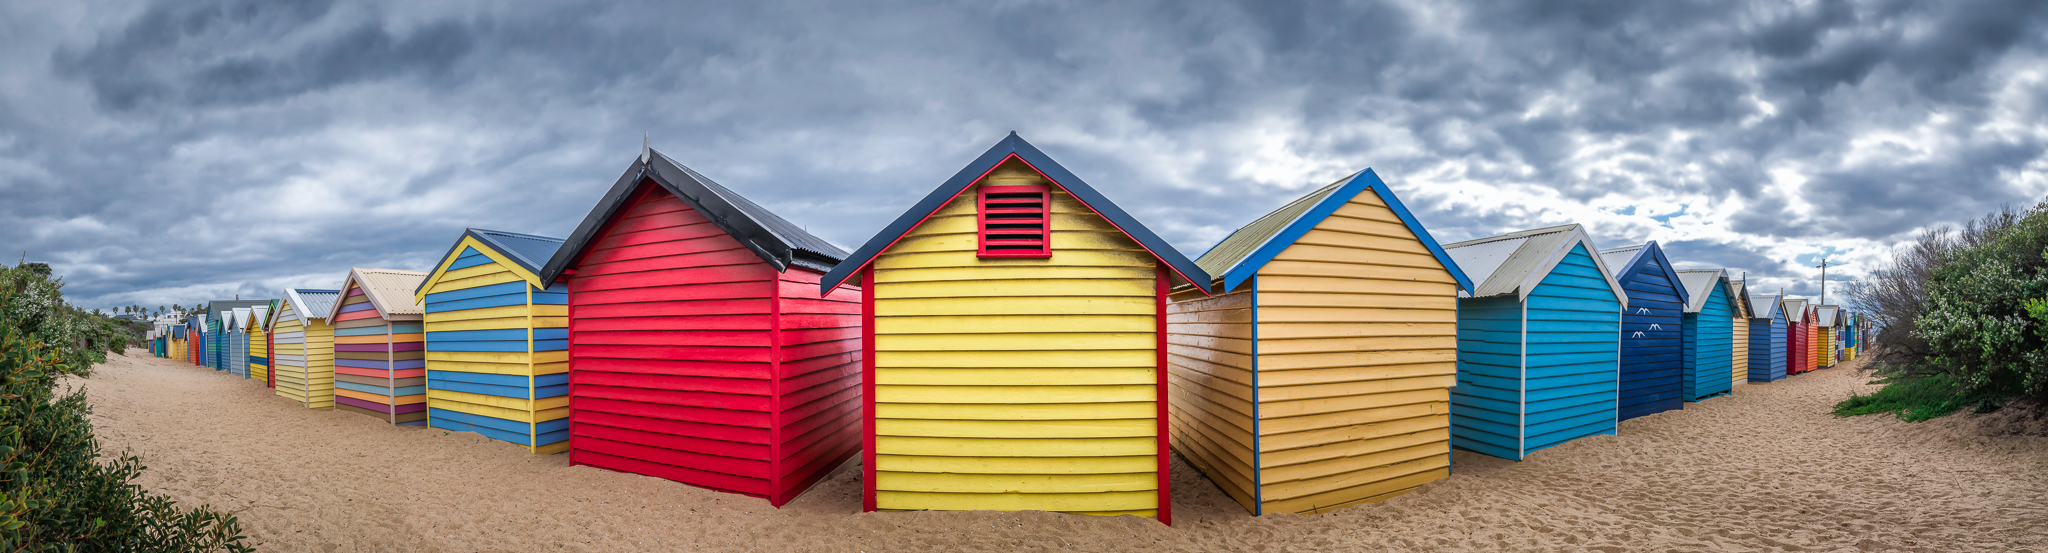 Brighton Beach Bathing Boxes (Victoria, Australia)